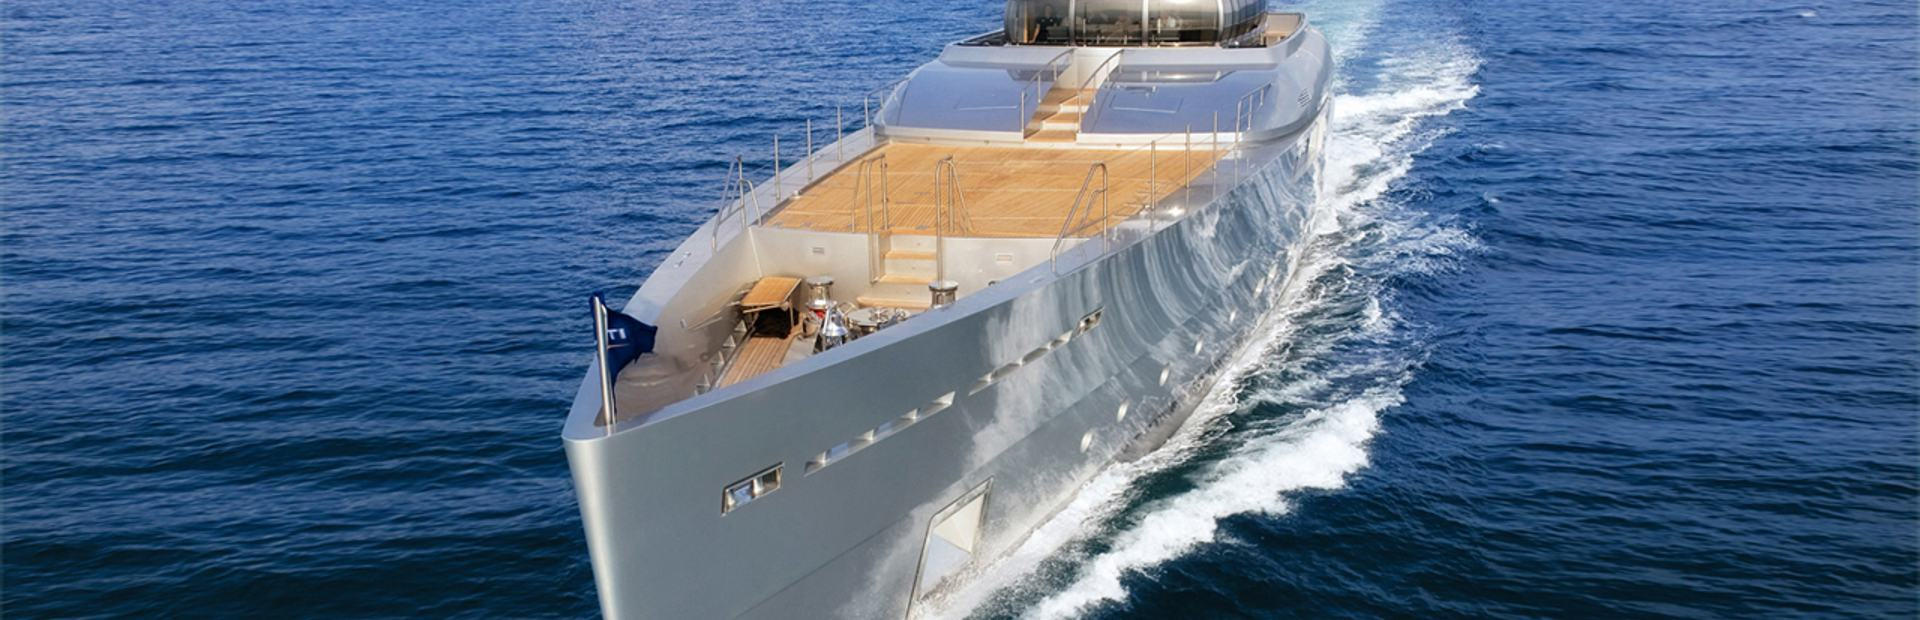 'Superyacht Exuma'  built by Perini Navi on charter in South Pacific